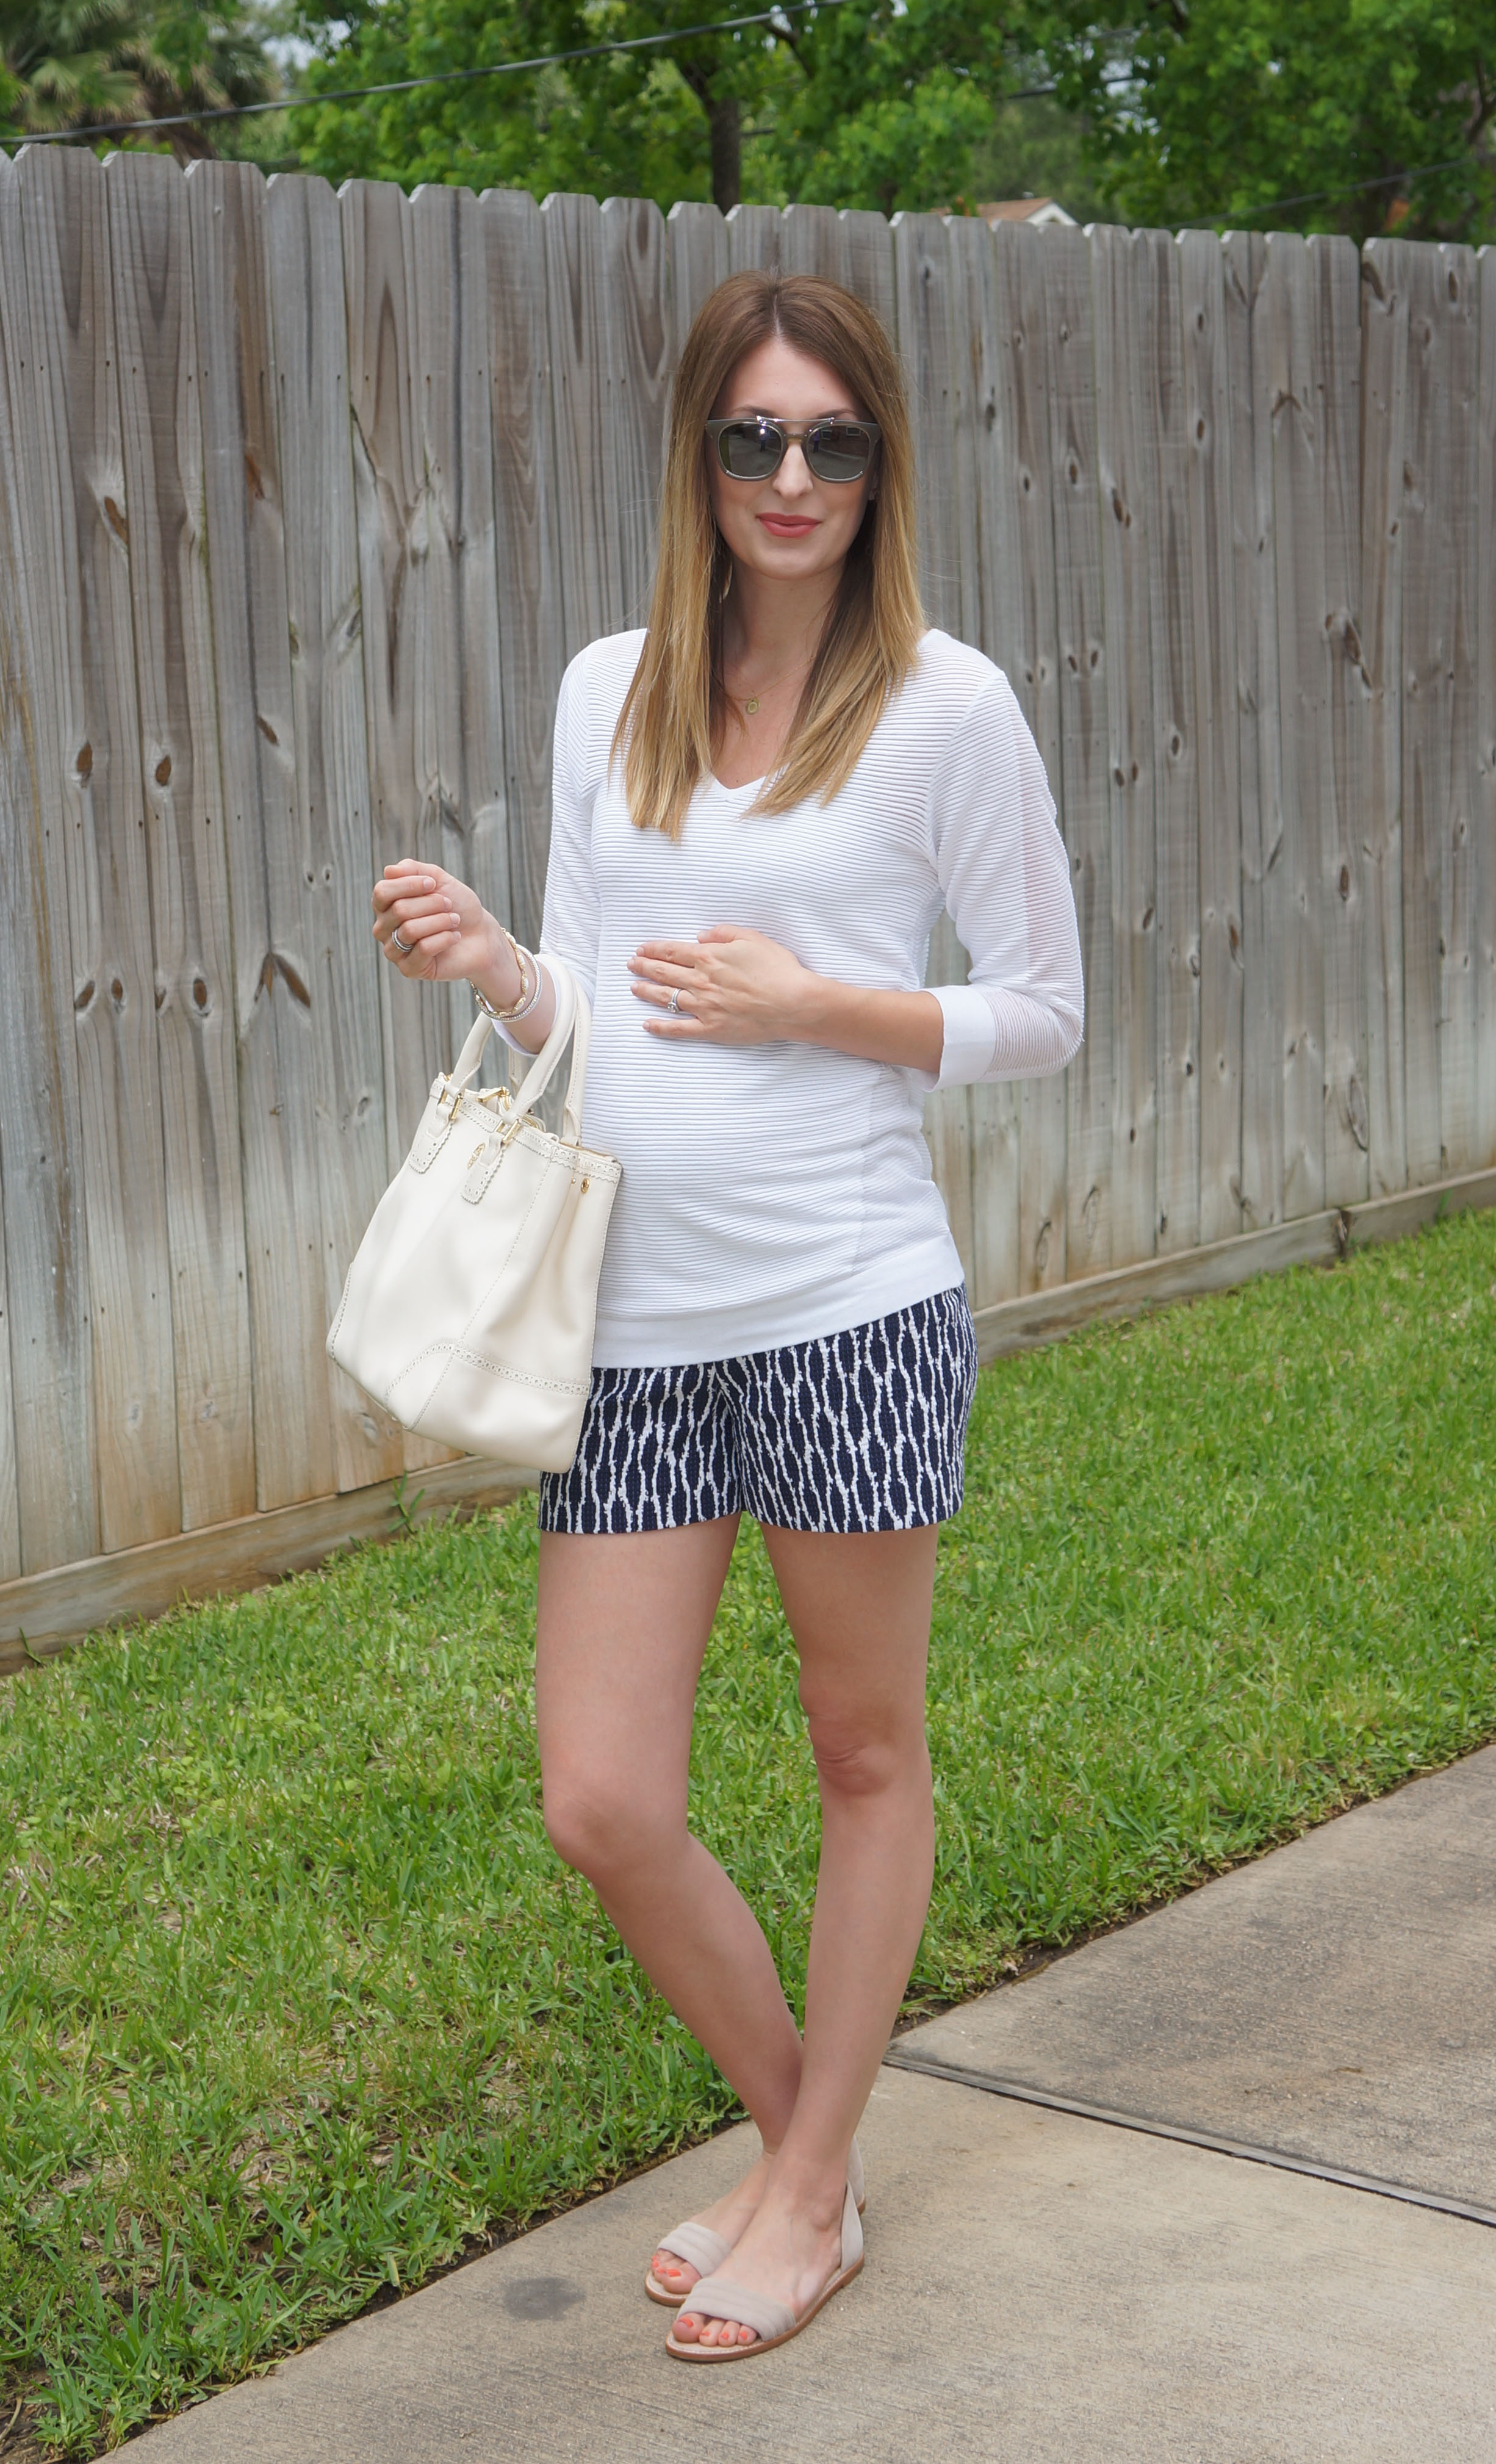 loft maternity. sweater: a pea in the pod (loving this non-maternity sweater too) / shorts: loft maternity (same shorts regular sizes here) sandals: j.crew bag: tory